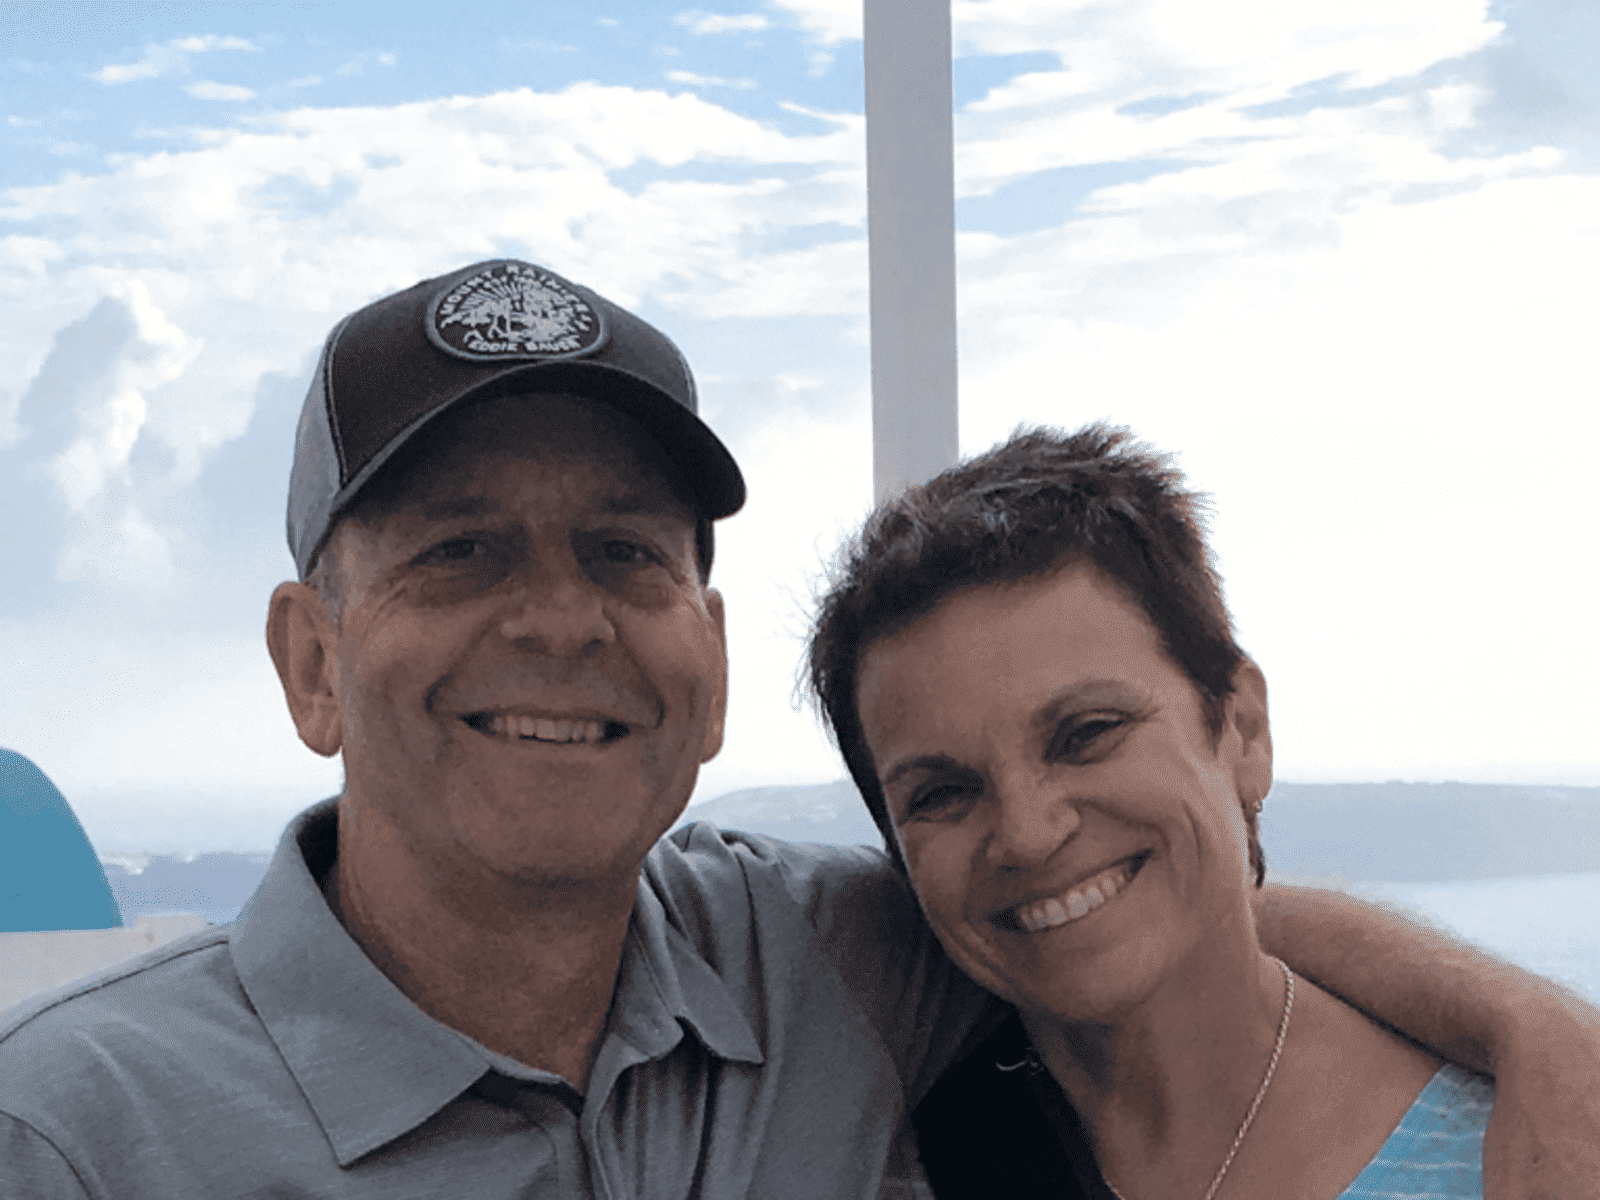 Pennee & Bill from Grand Rapids, Michigan, United States